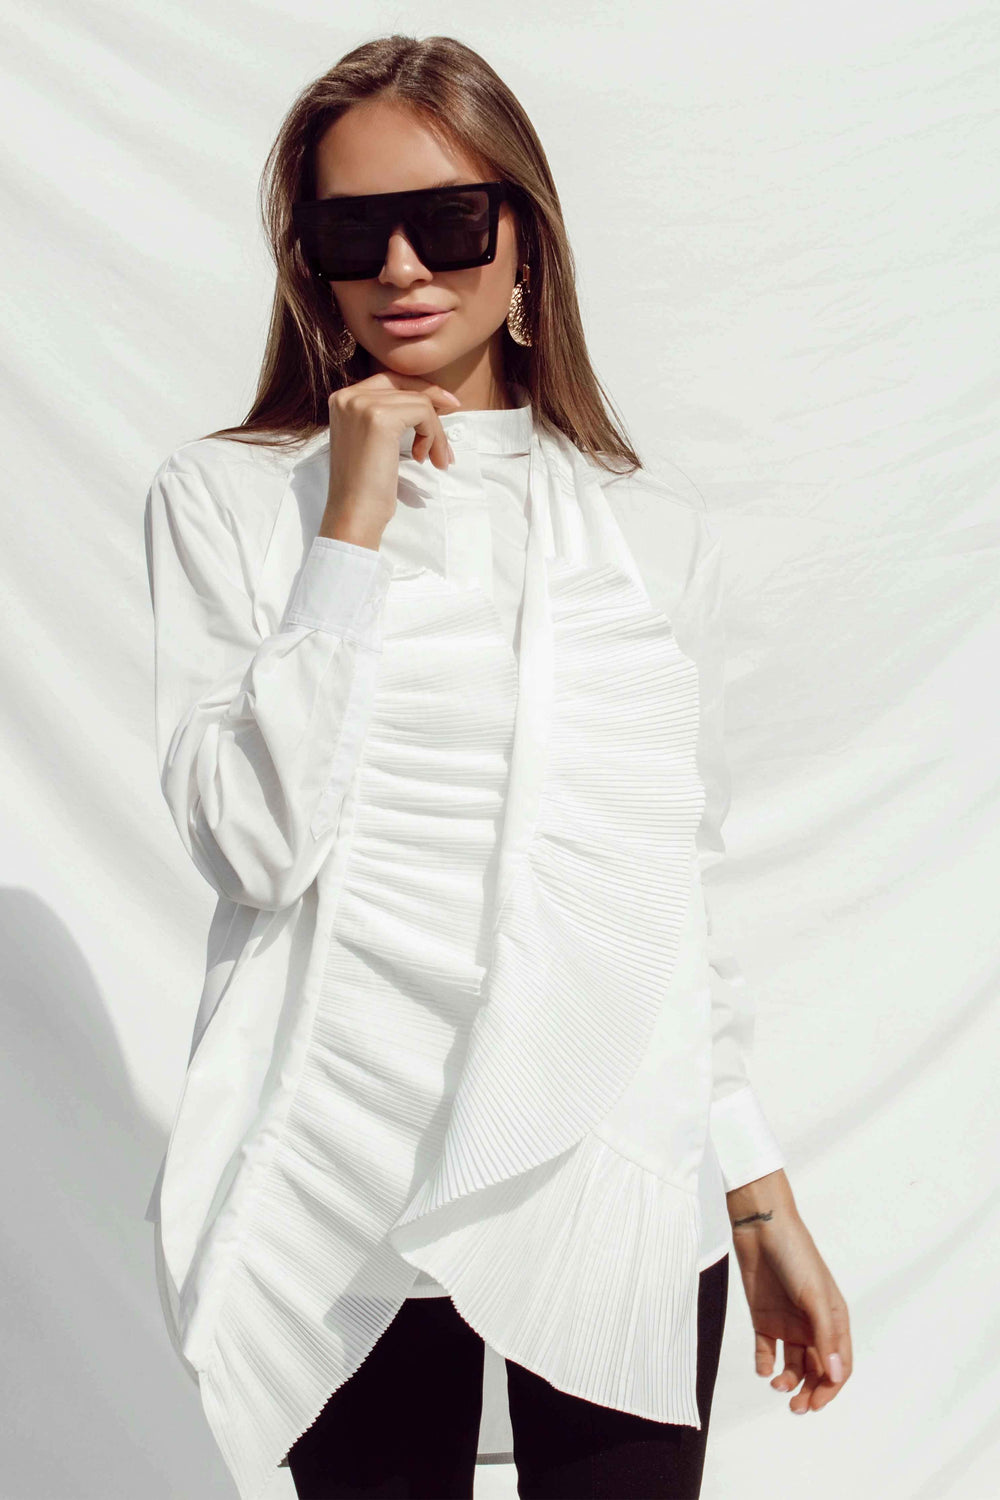 ZAHAVA SHIRT IN WHITE - Chic Le Frique